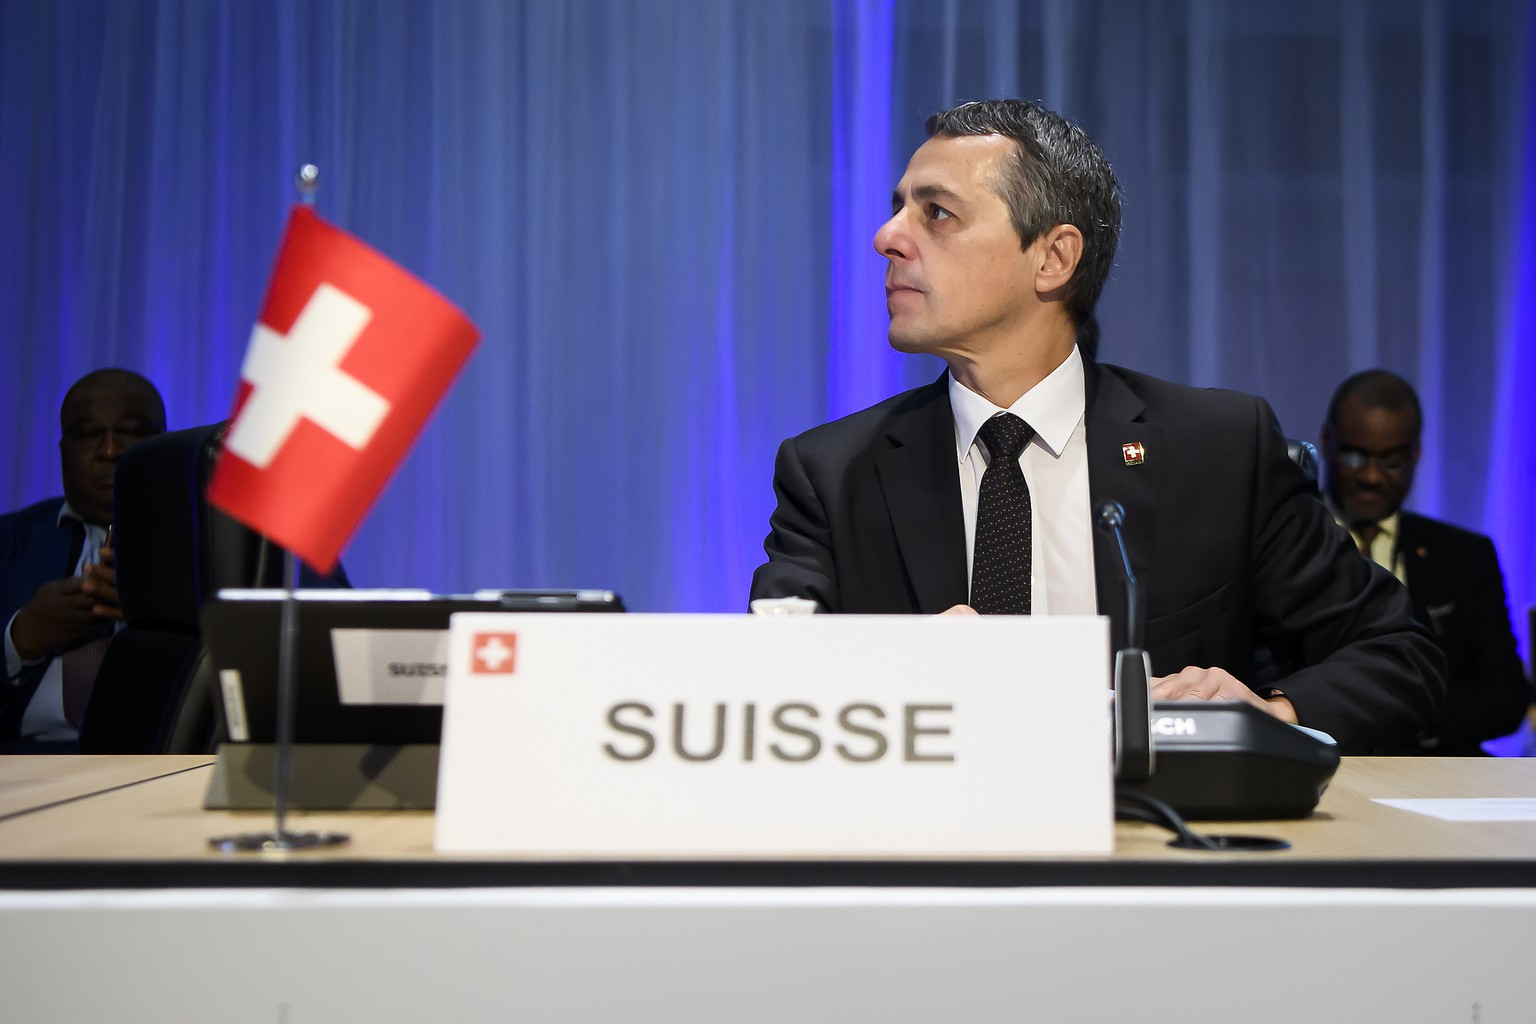 Swiss Federal Councillor Ignazio Cassis, pictured at the Ministerial Conference of La Francophonie in Monaco, Thursday, October 31, 2019. The Swiss Federal Councillor Ignazio Cassis  will attend the annual Ministerial Conference of La Francophonie in Monaco on 30 and 31 October. (KEYSTONE/Anthony Anex)